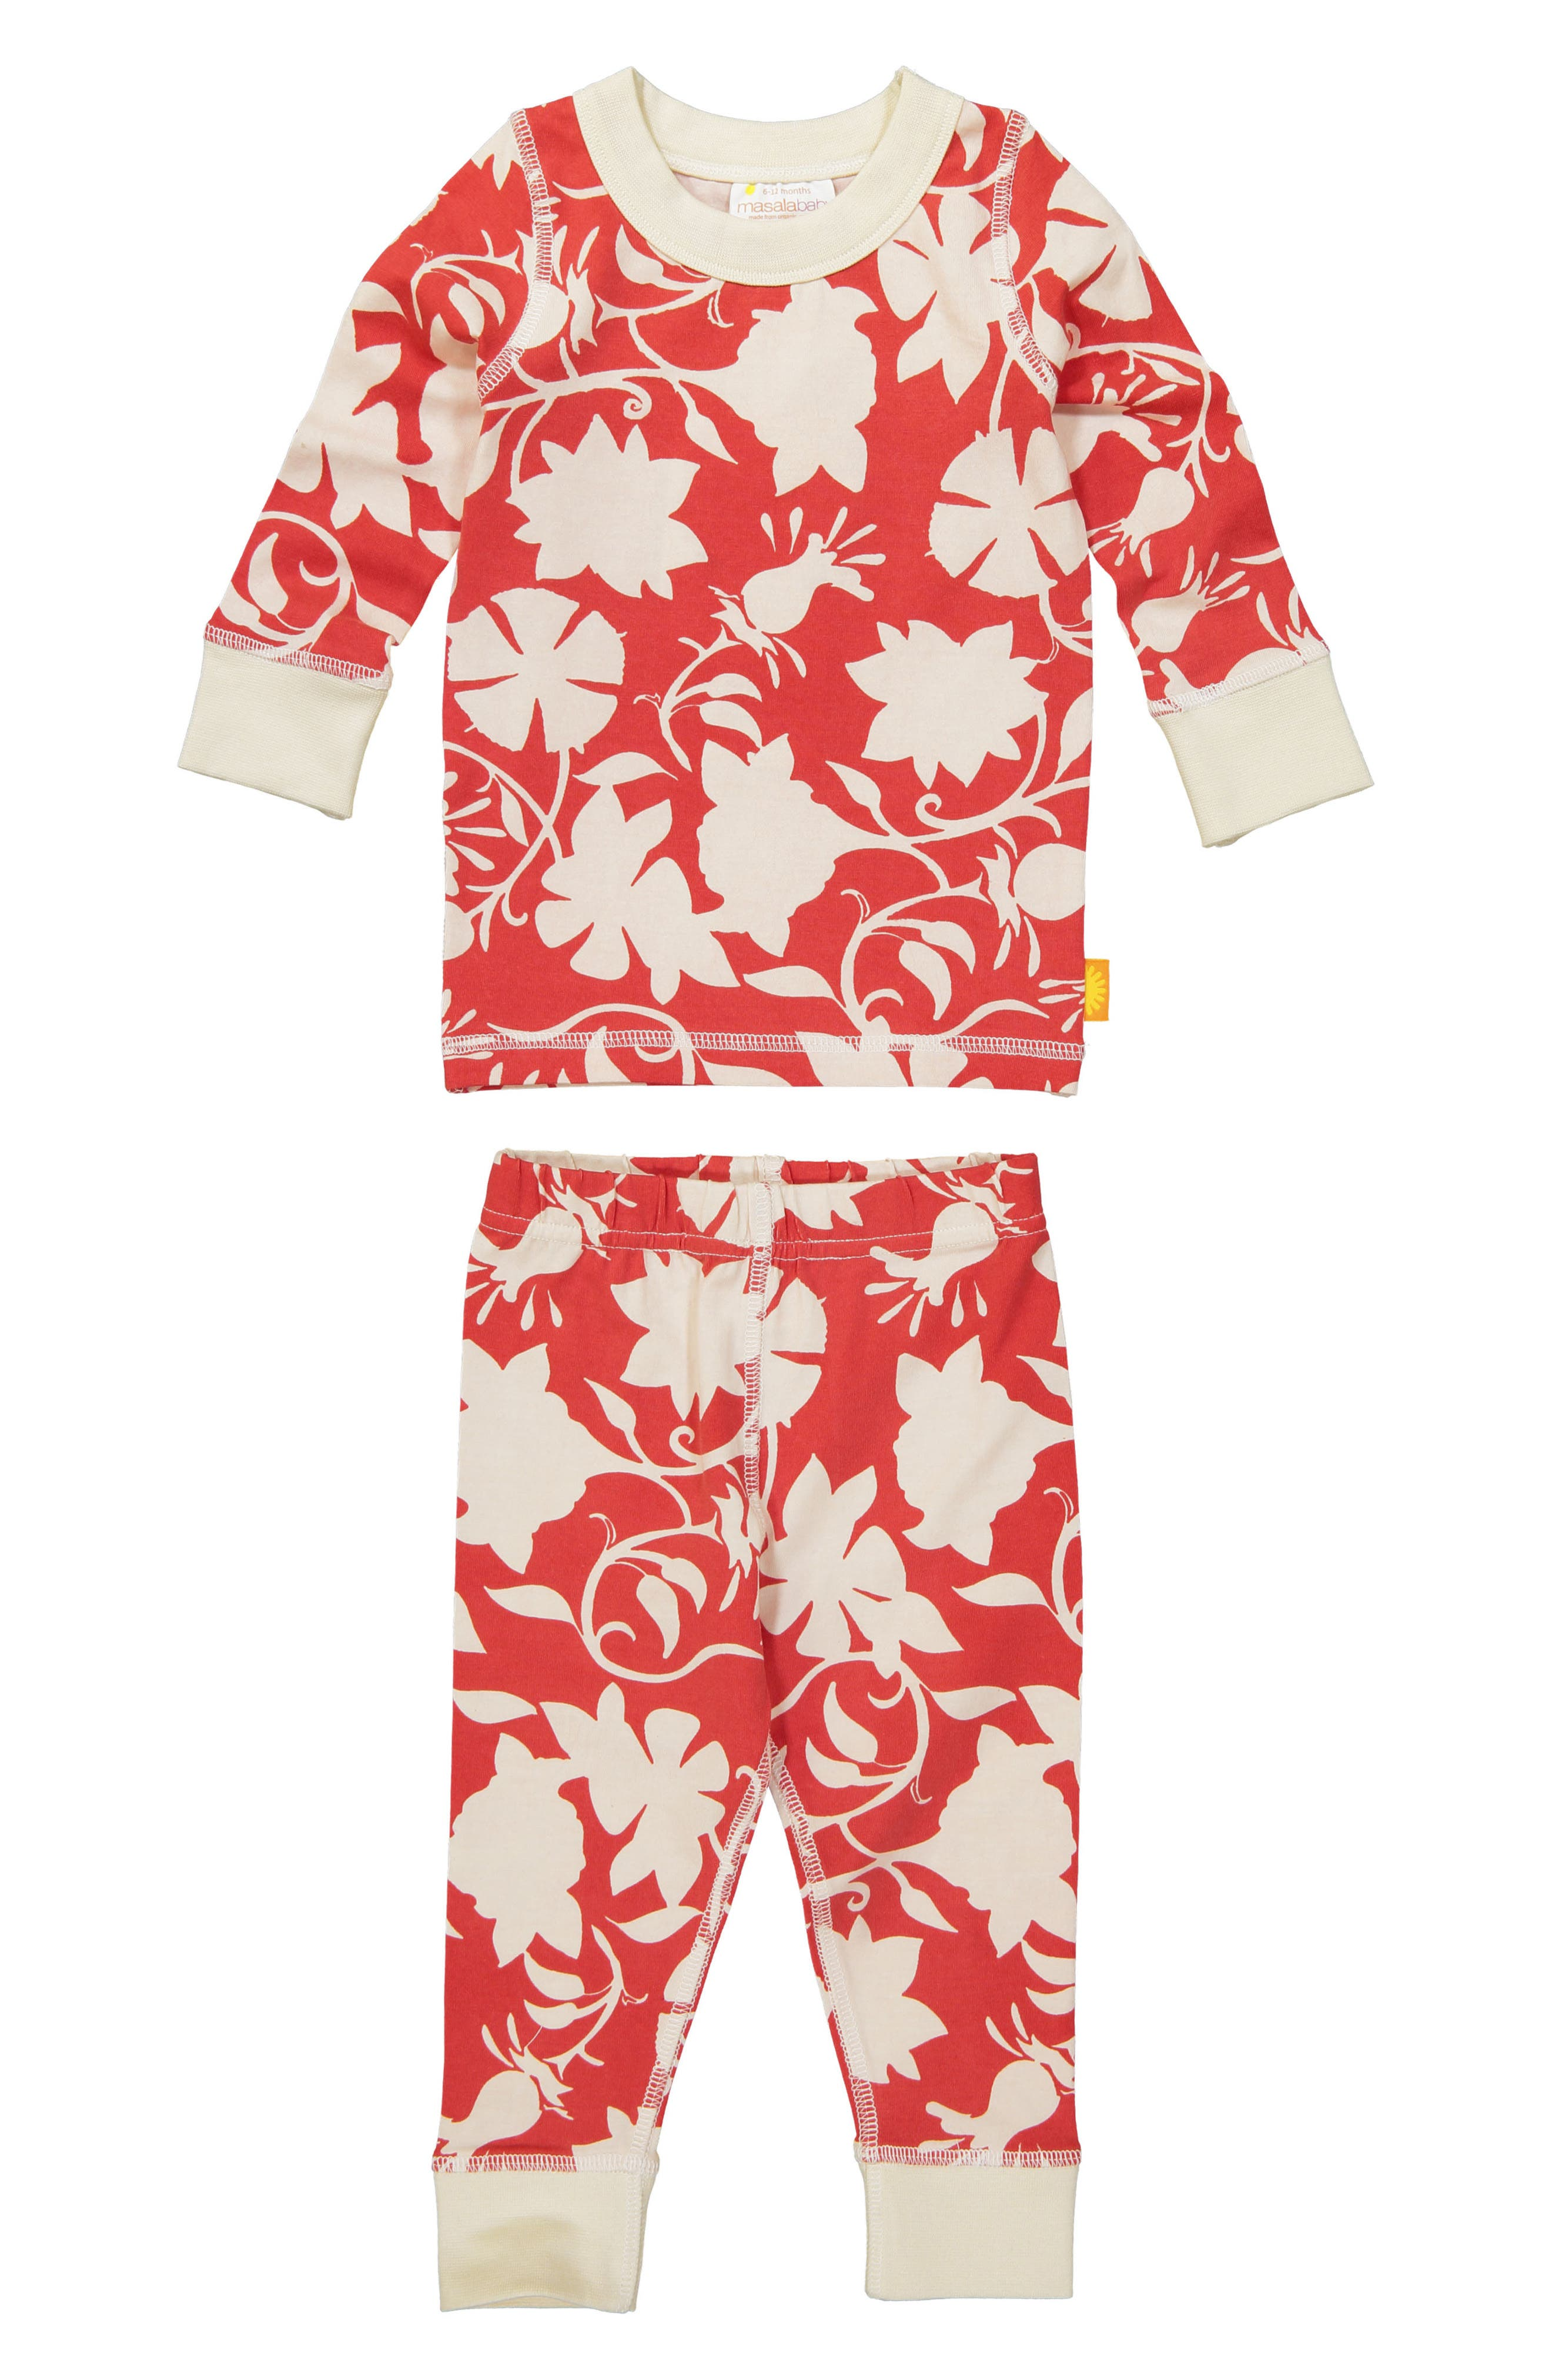 Infant Girls Masala Baby Jolie Organic Cotton Fitted TwoPiece Pajamas Size 1218M  Red